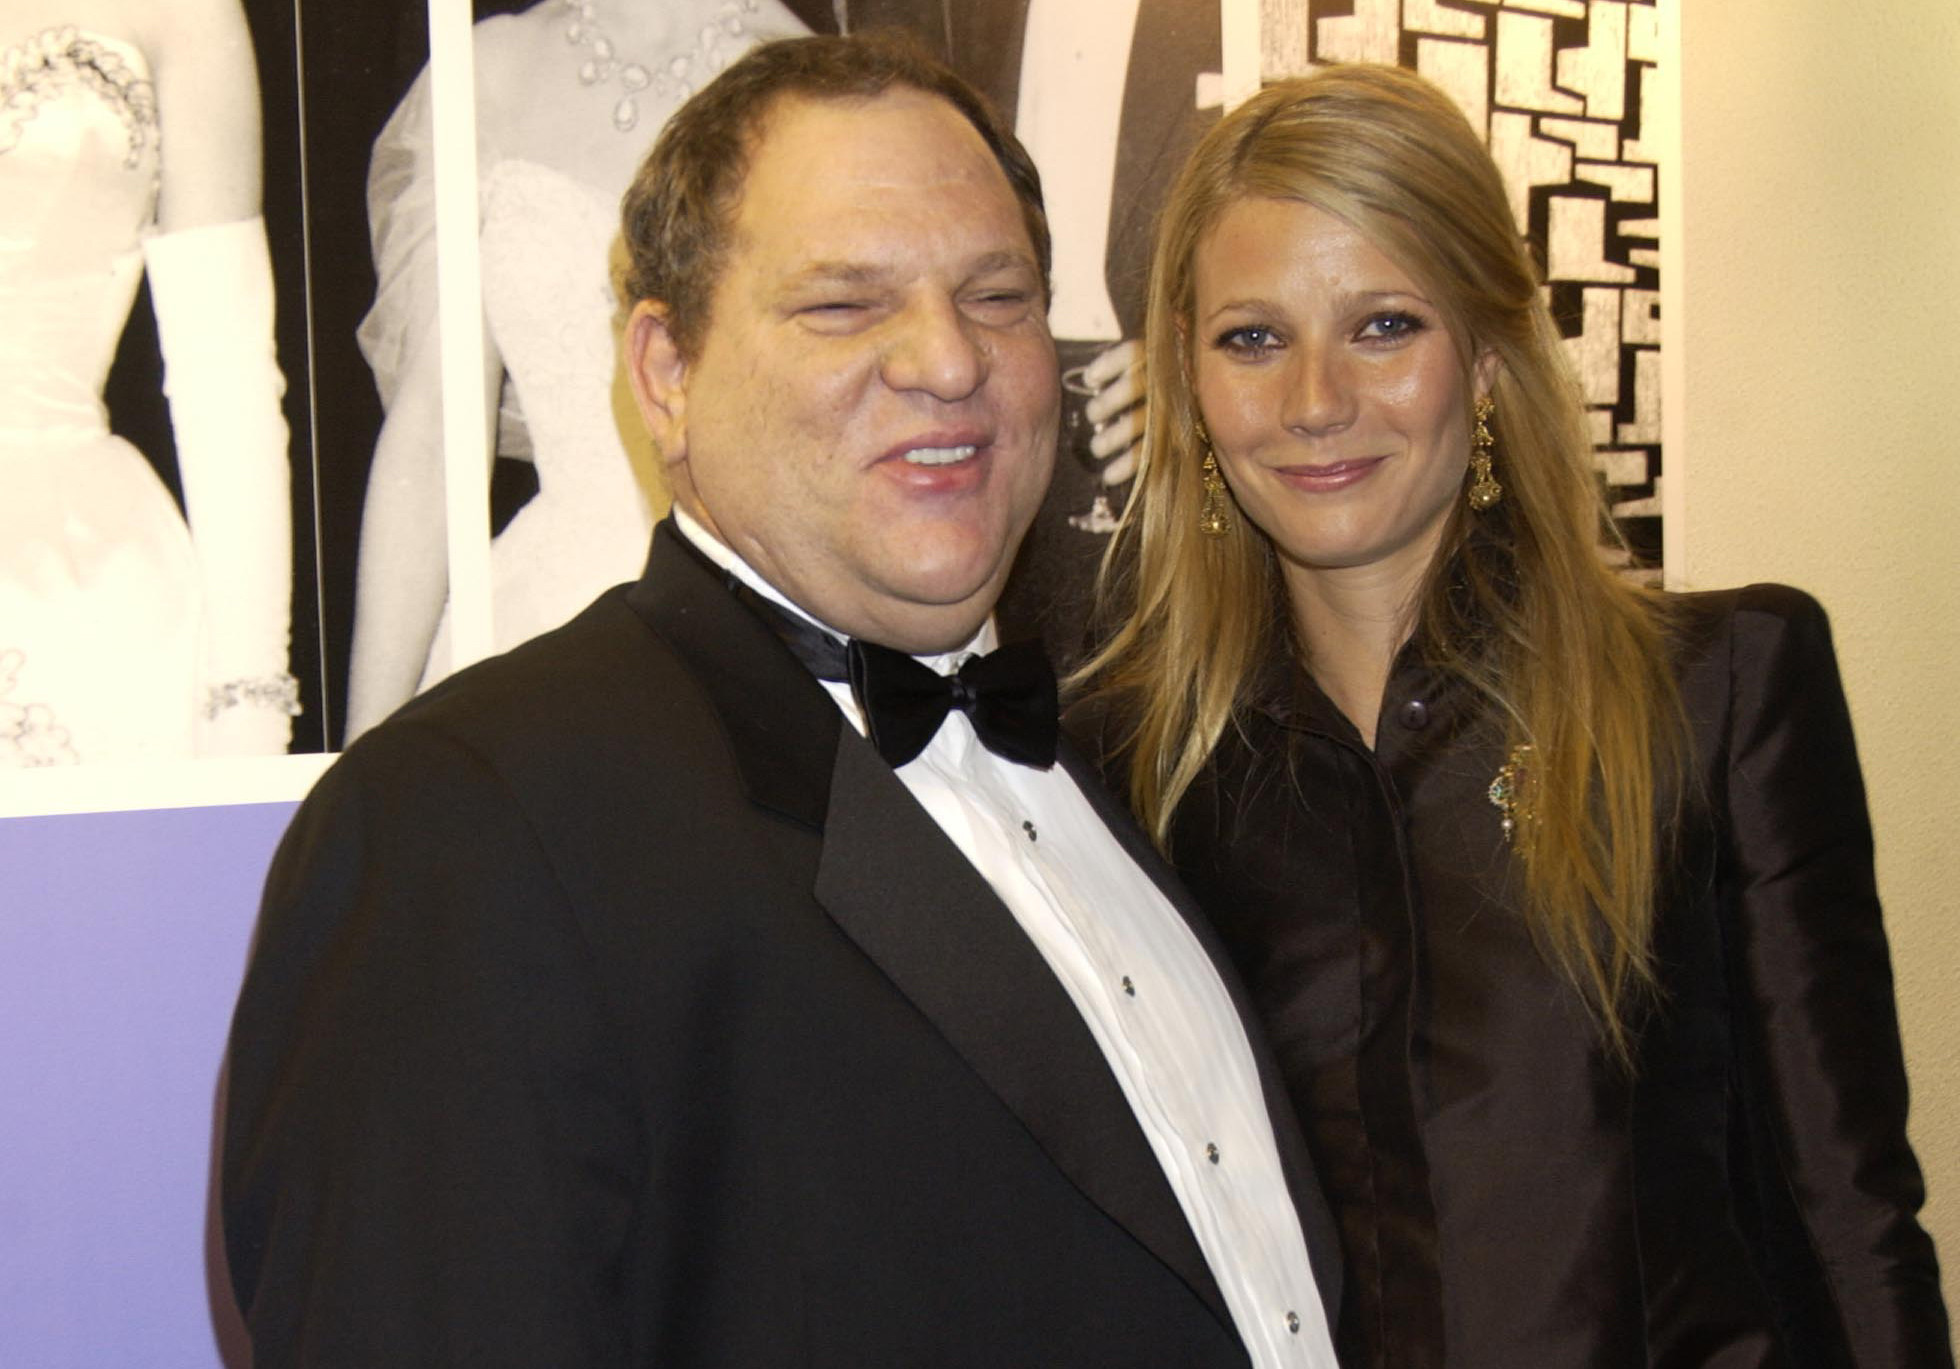 Harvey Weinstein and Gwyneth Paltrow at an event in London in 2002. (Getty Images)